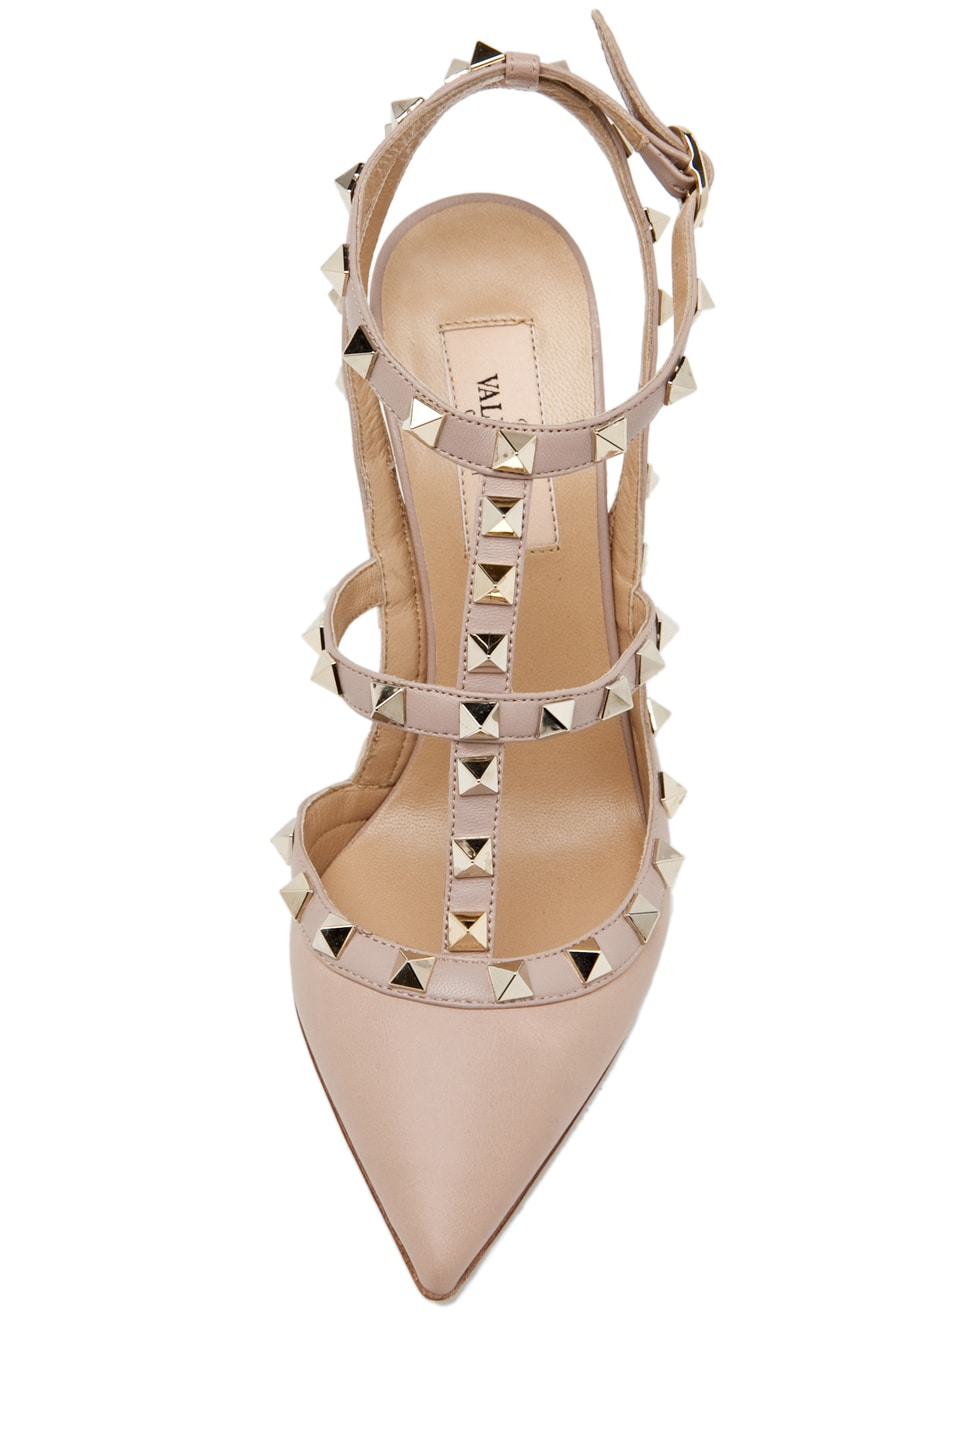 Image 4 of Valentino Rockstud Leather Slingbacks T.100 in Powder